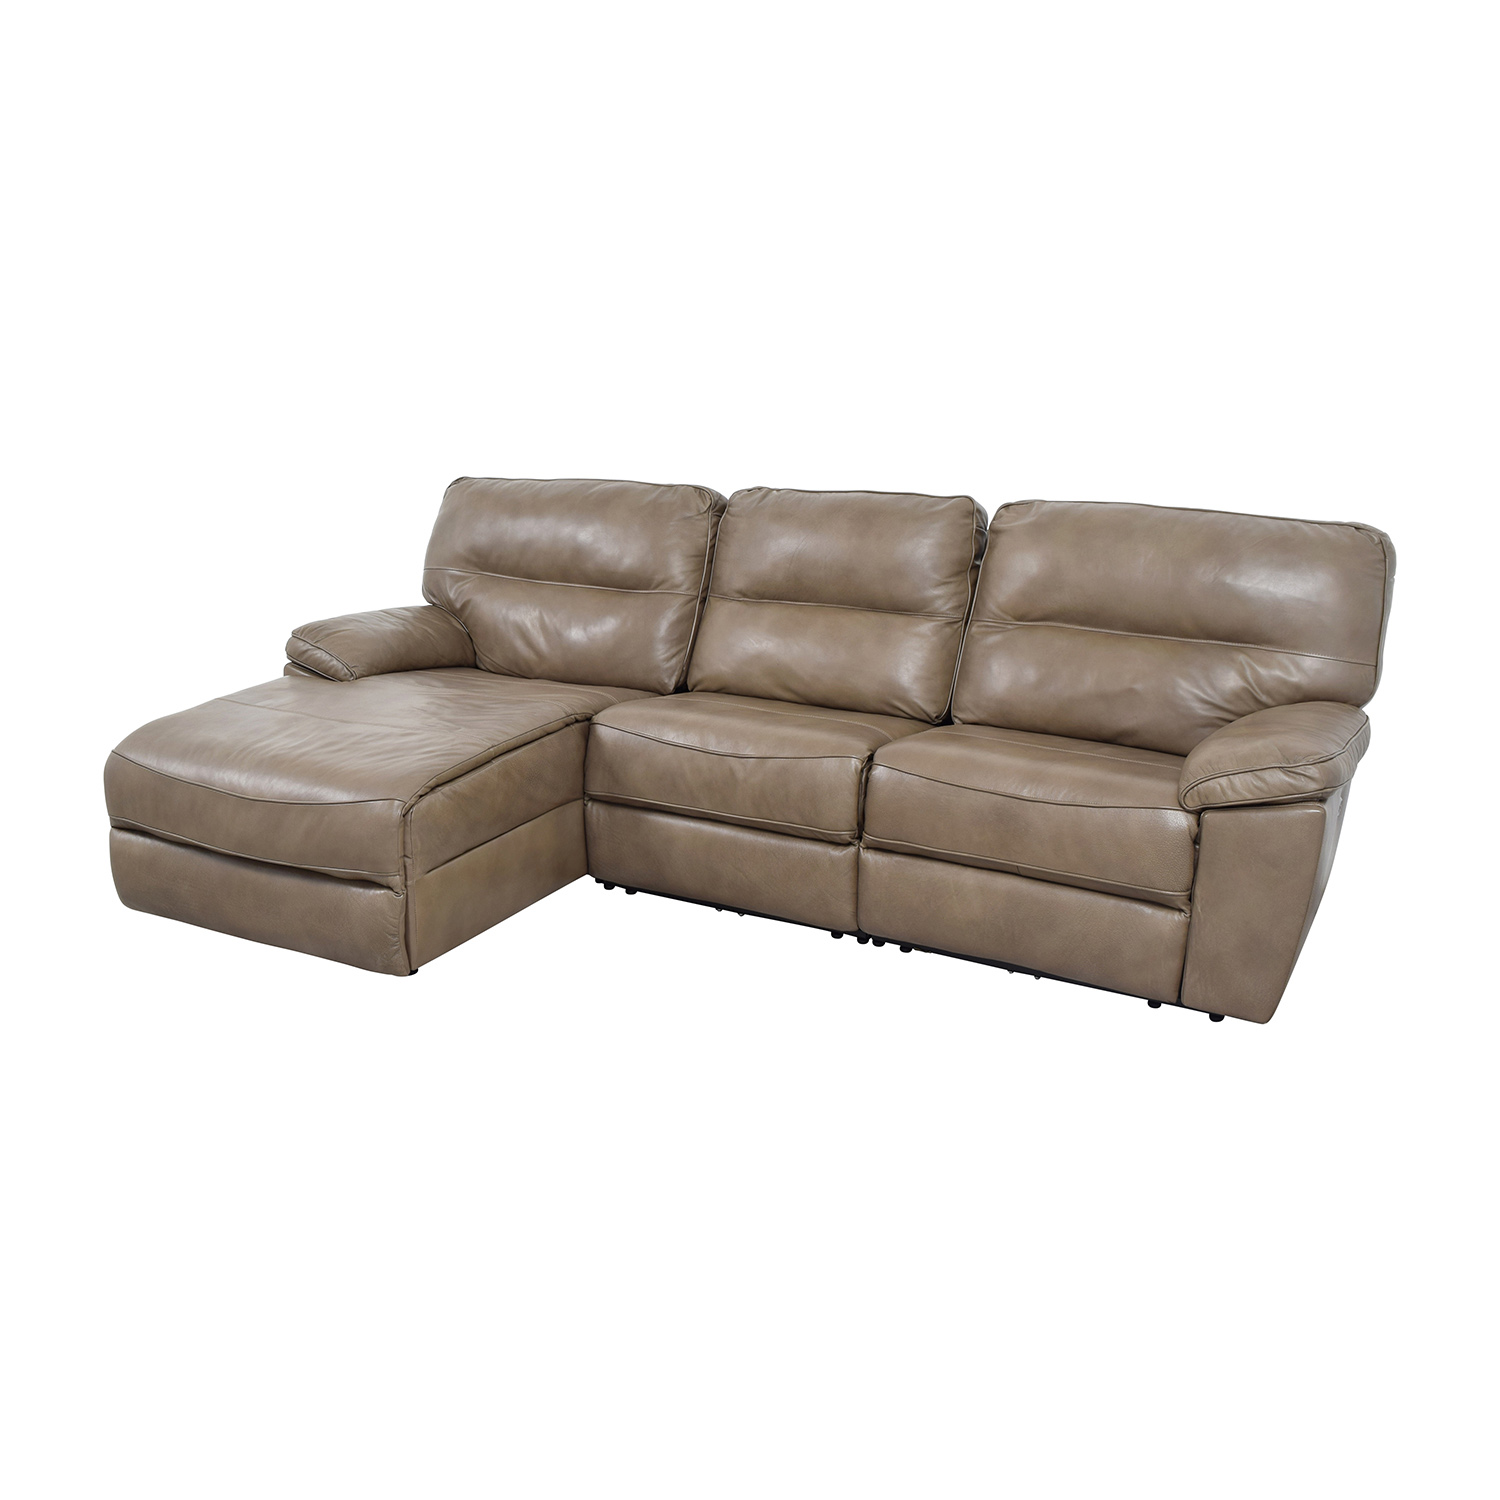 Leather chaise lounge sofa bed cado modern furniture for Black and silver chaise lounge